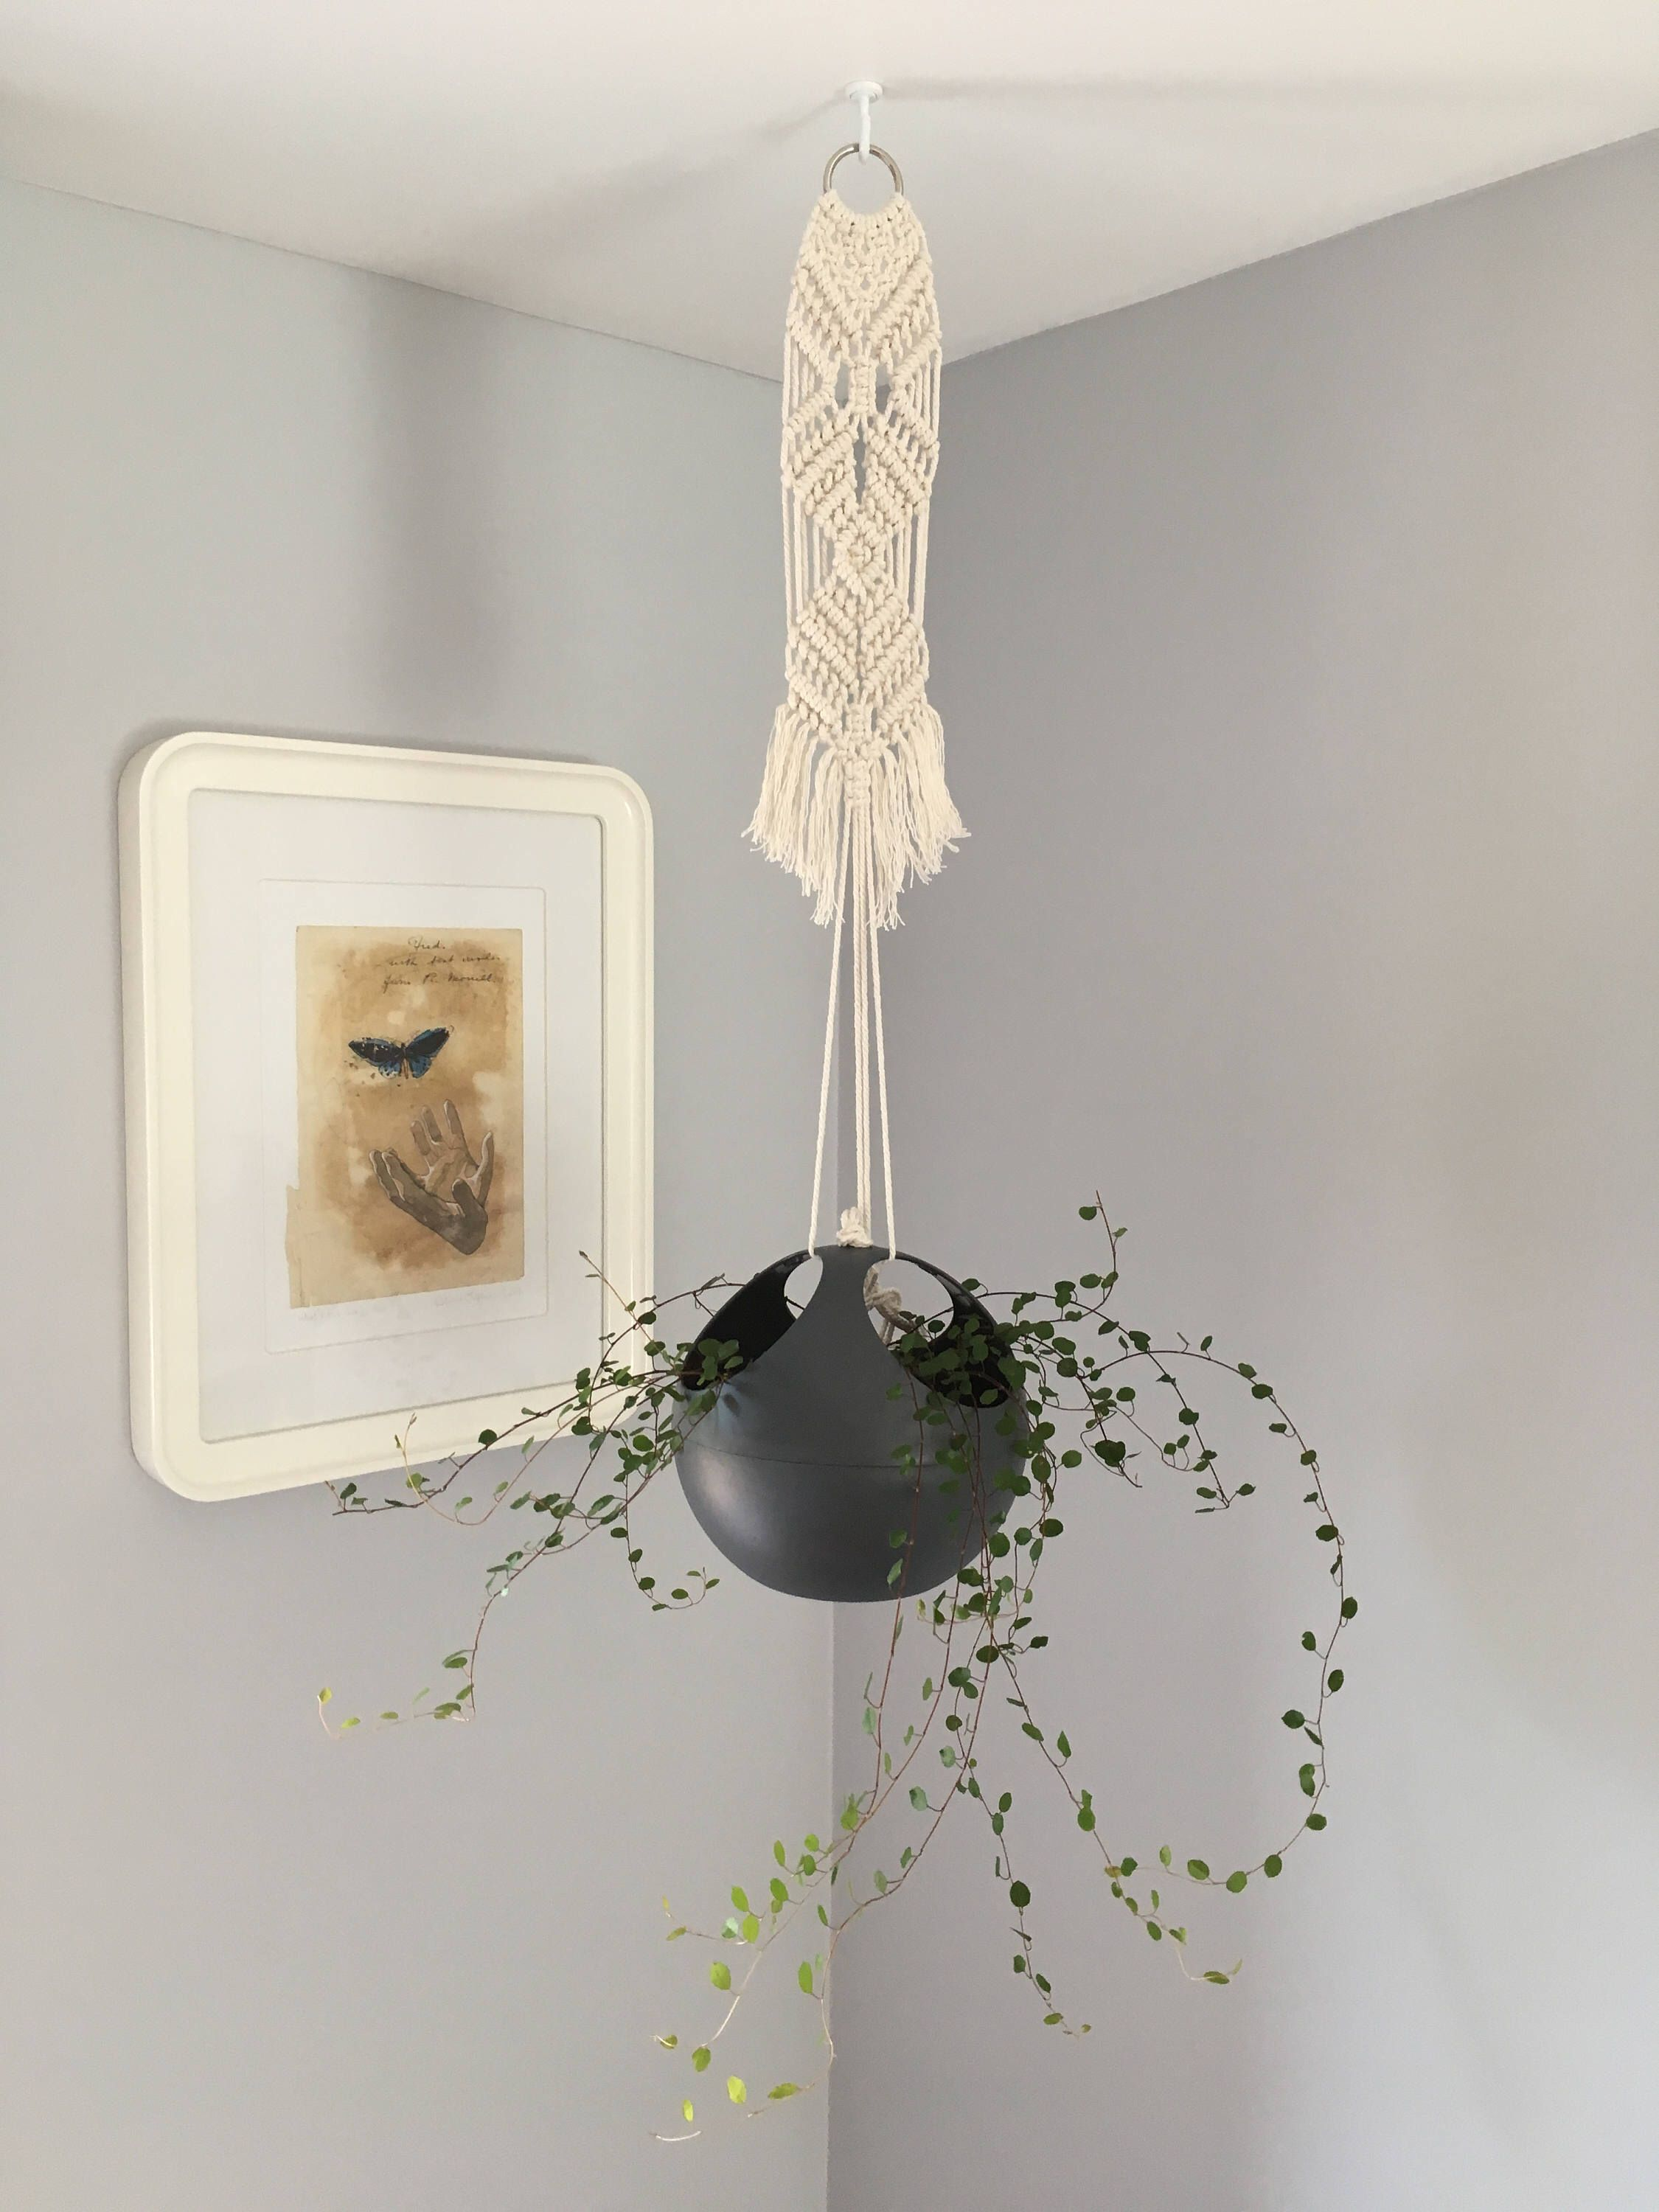 Macrame Hanging Pot extension by MonsteraCreative on Etsy https://www.etsy.com/listing/540392157/macrame-hanging-pot-extension